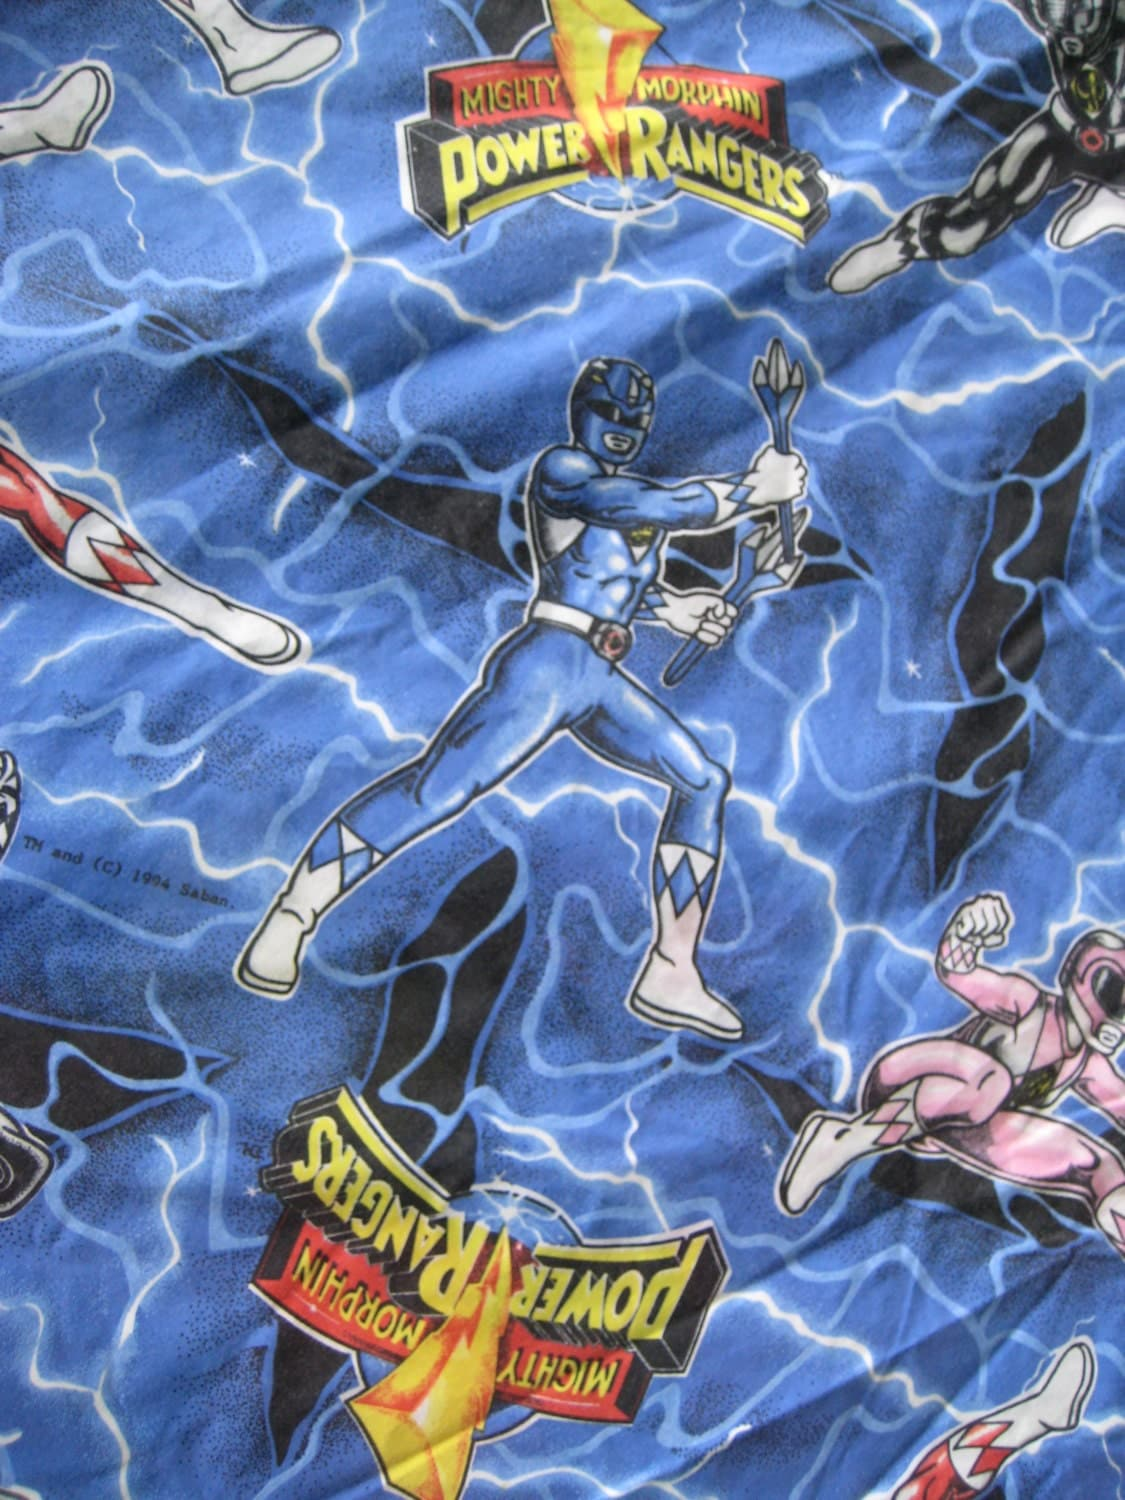 Power Rangers Bedroom: Vintage Mighty Morphin Power Rangers Bedding Cover For Duvet